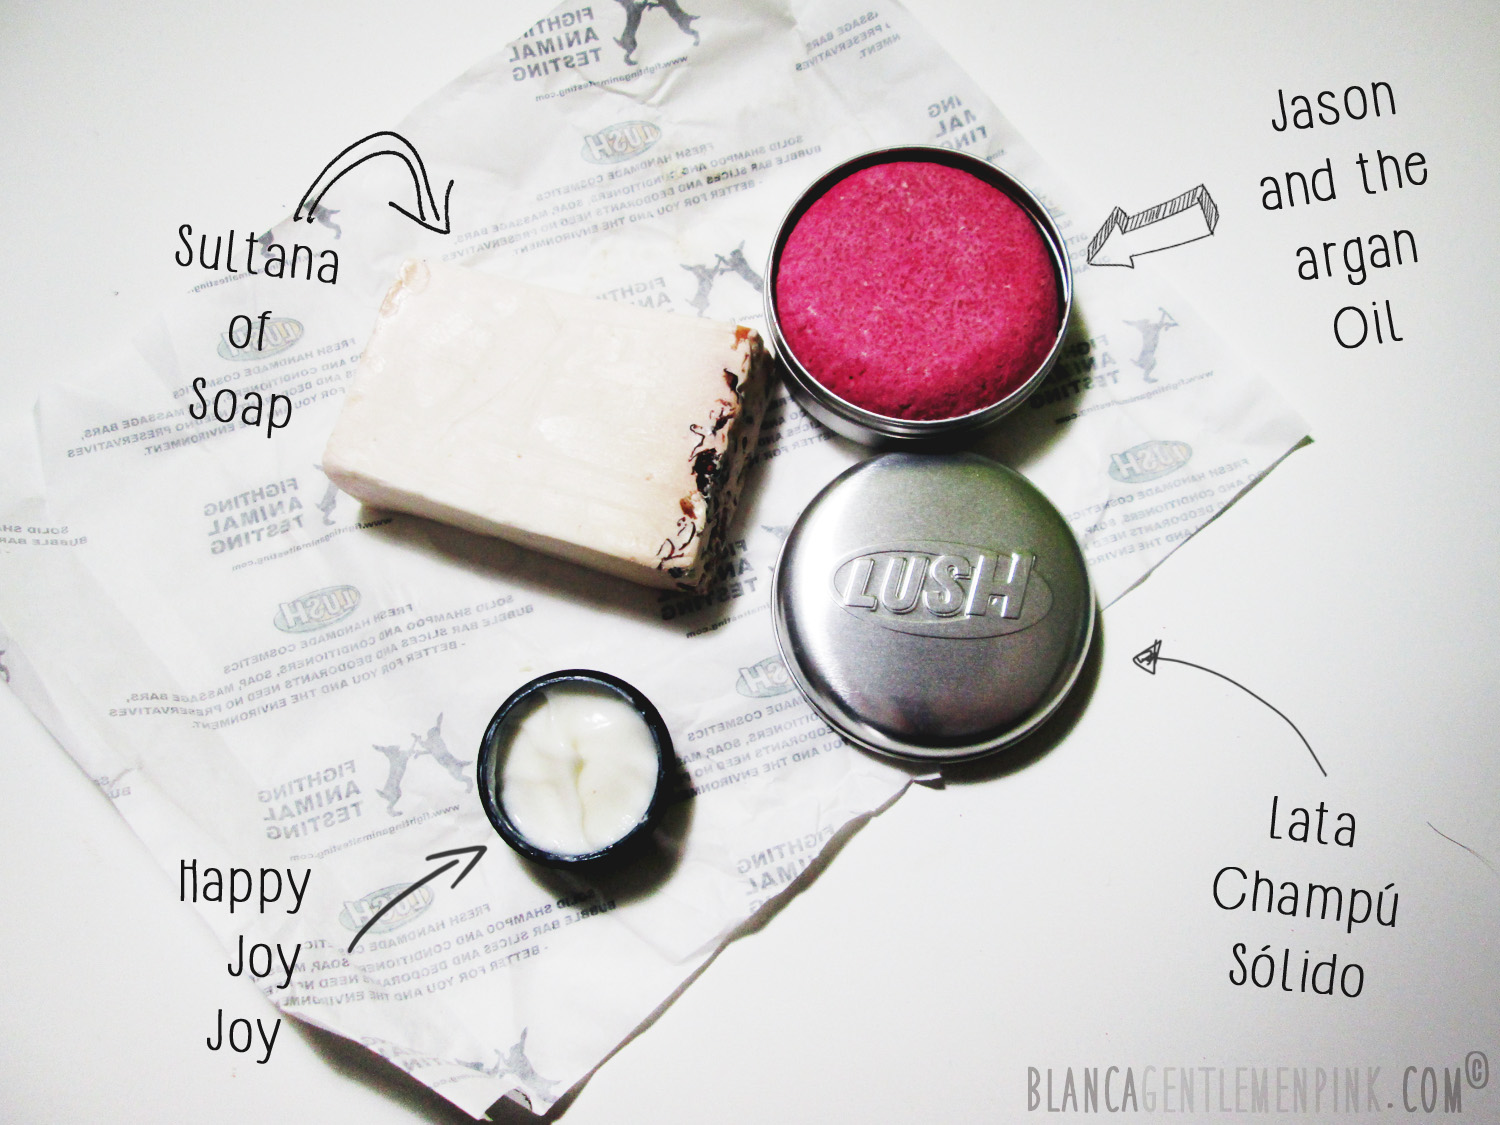 Happy Joy Joy, Champú solido, Sultana Soap, Lush